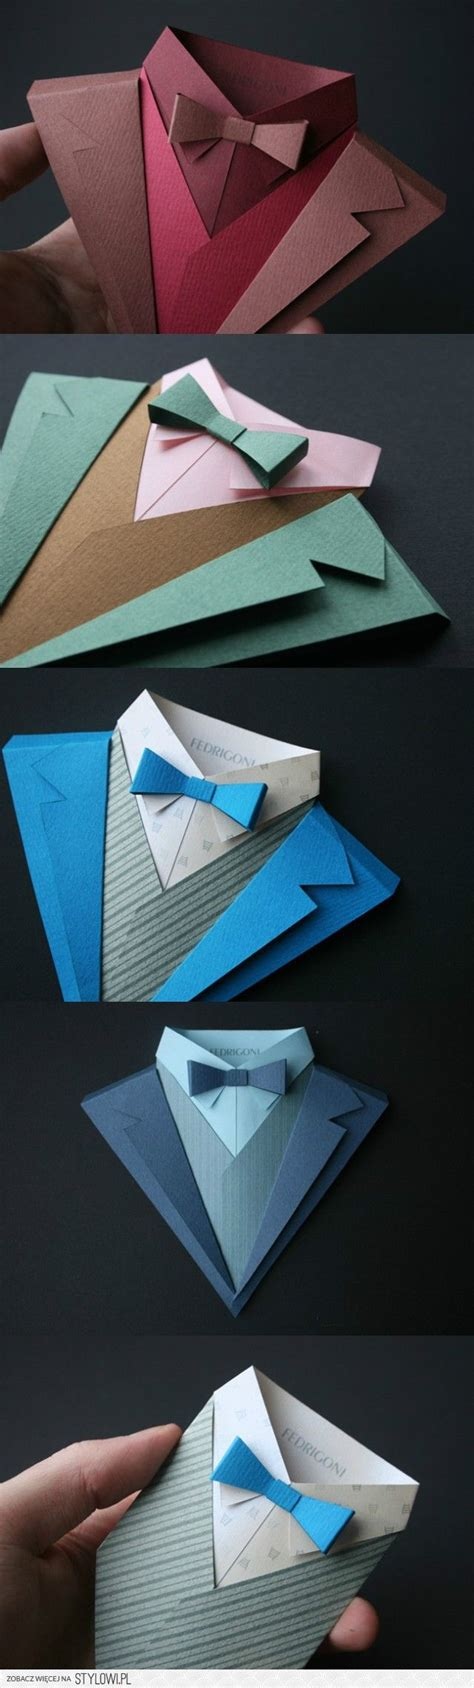 How To Make A Tuxedo Out Of Paper - tuxedo cards etiquette invitations and printables